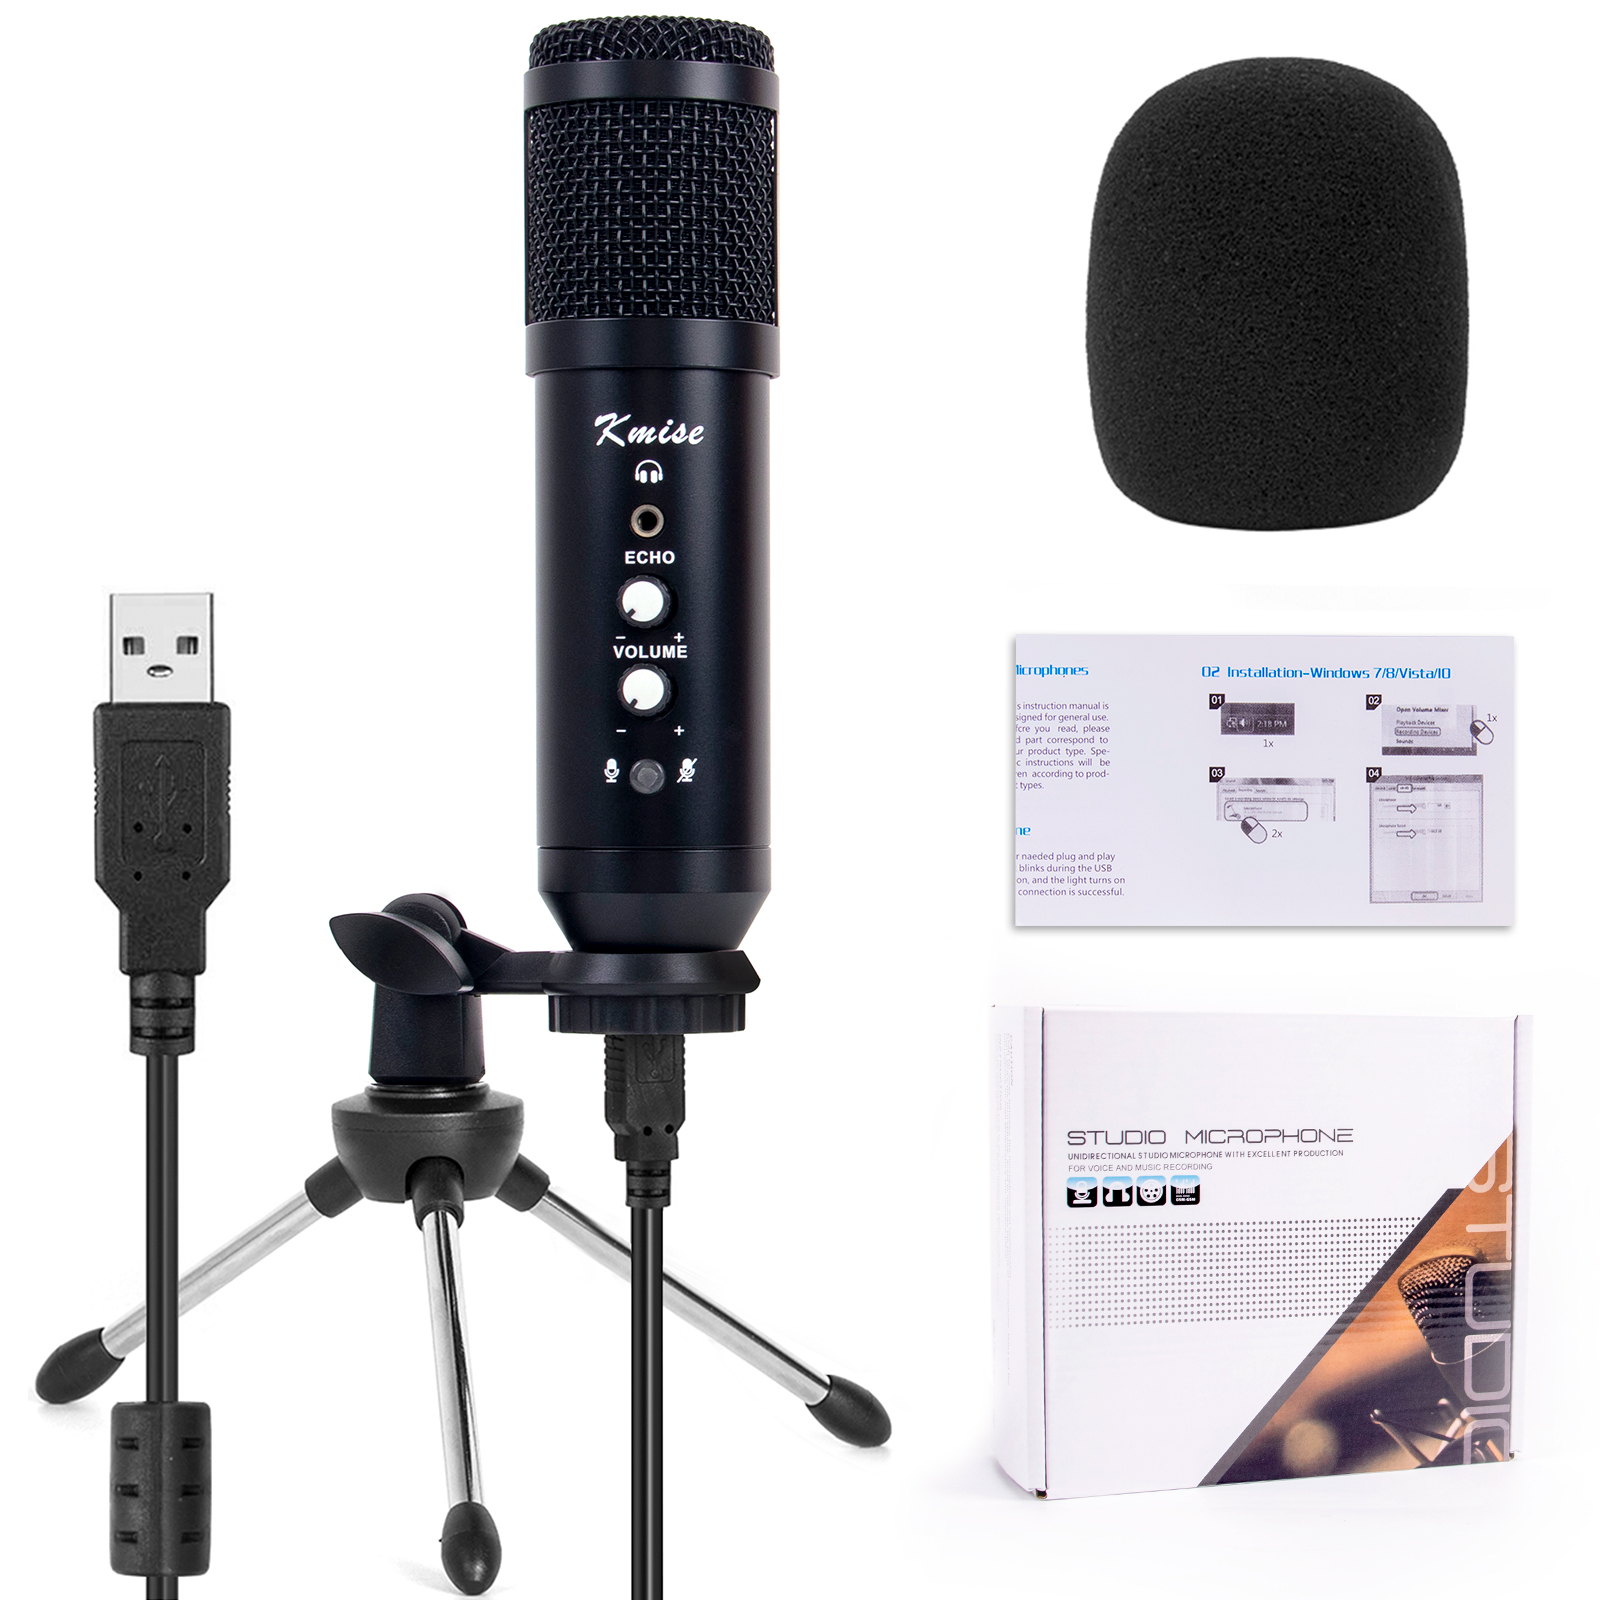 USB Condenser Microphone for Window&Mac,Multipurpose Mic for Gaming Recording Broadcast with Adjustable Mic Stand From Kmise